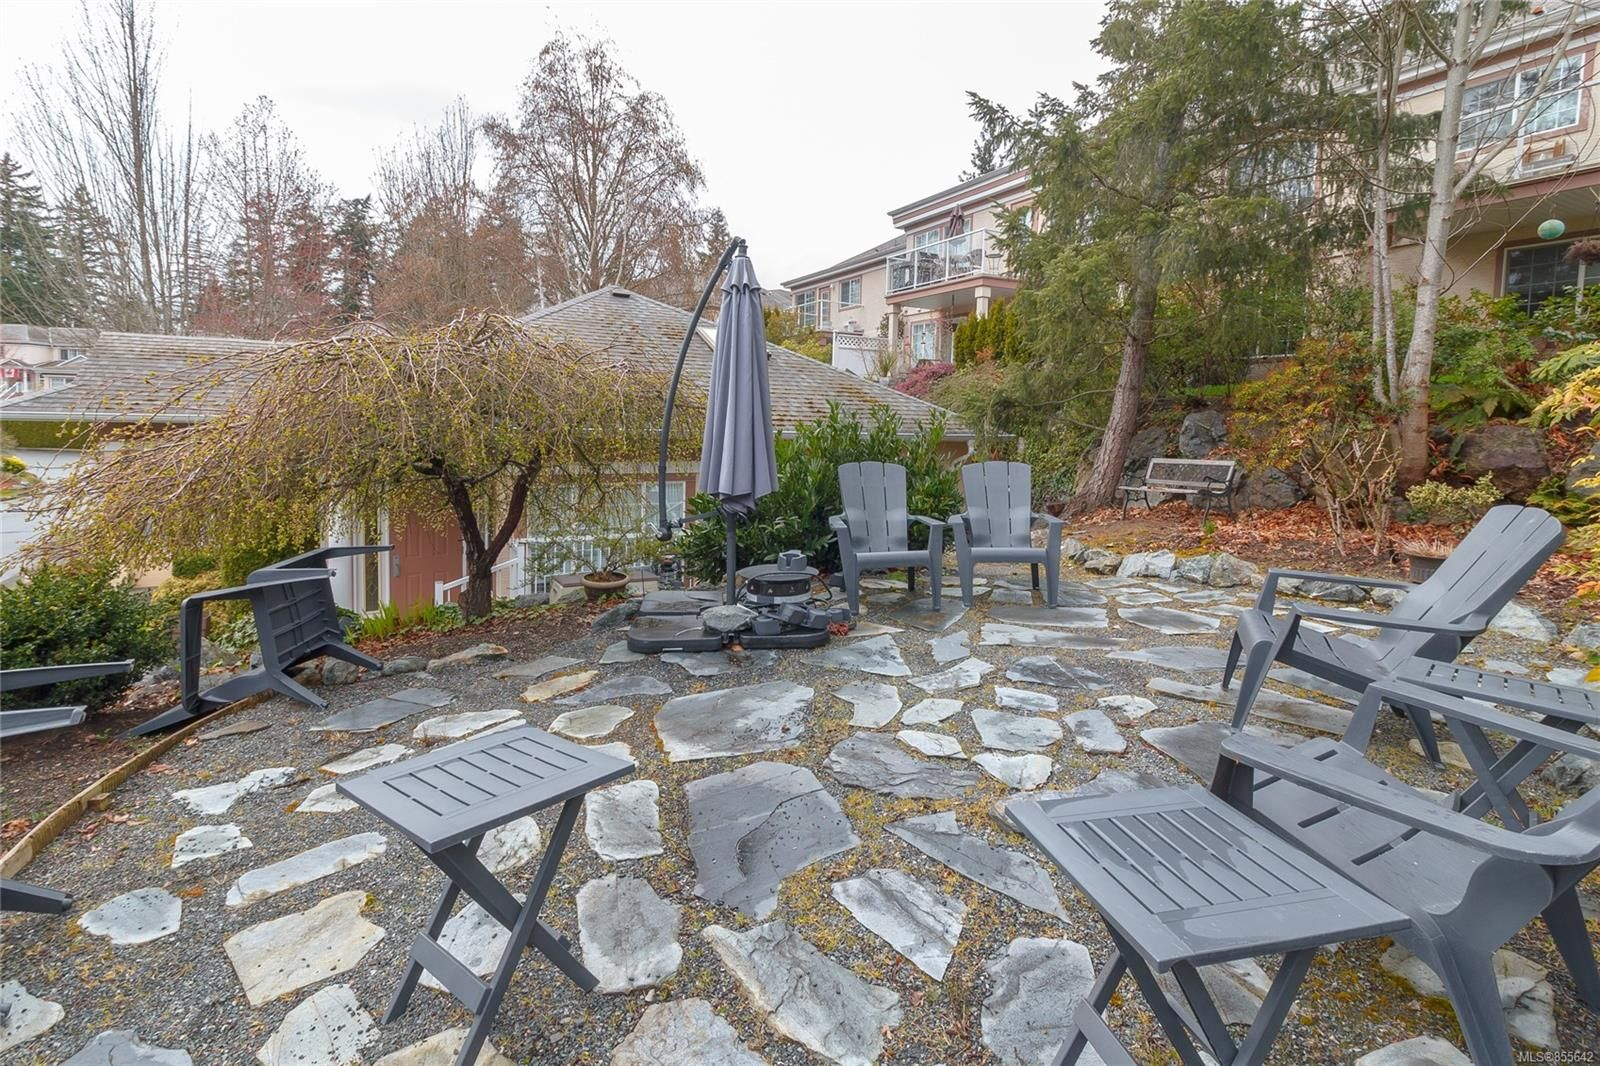 Photo 33: Photos: 52 14 Erskine Lane in : VR Hospital Row/Townhouse for sale (View Royal)  : MLS®# 855642